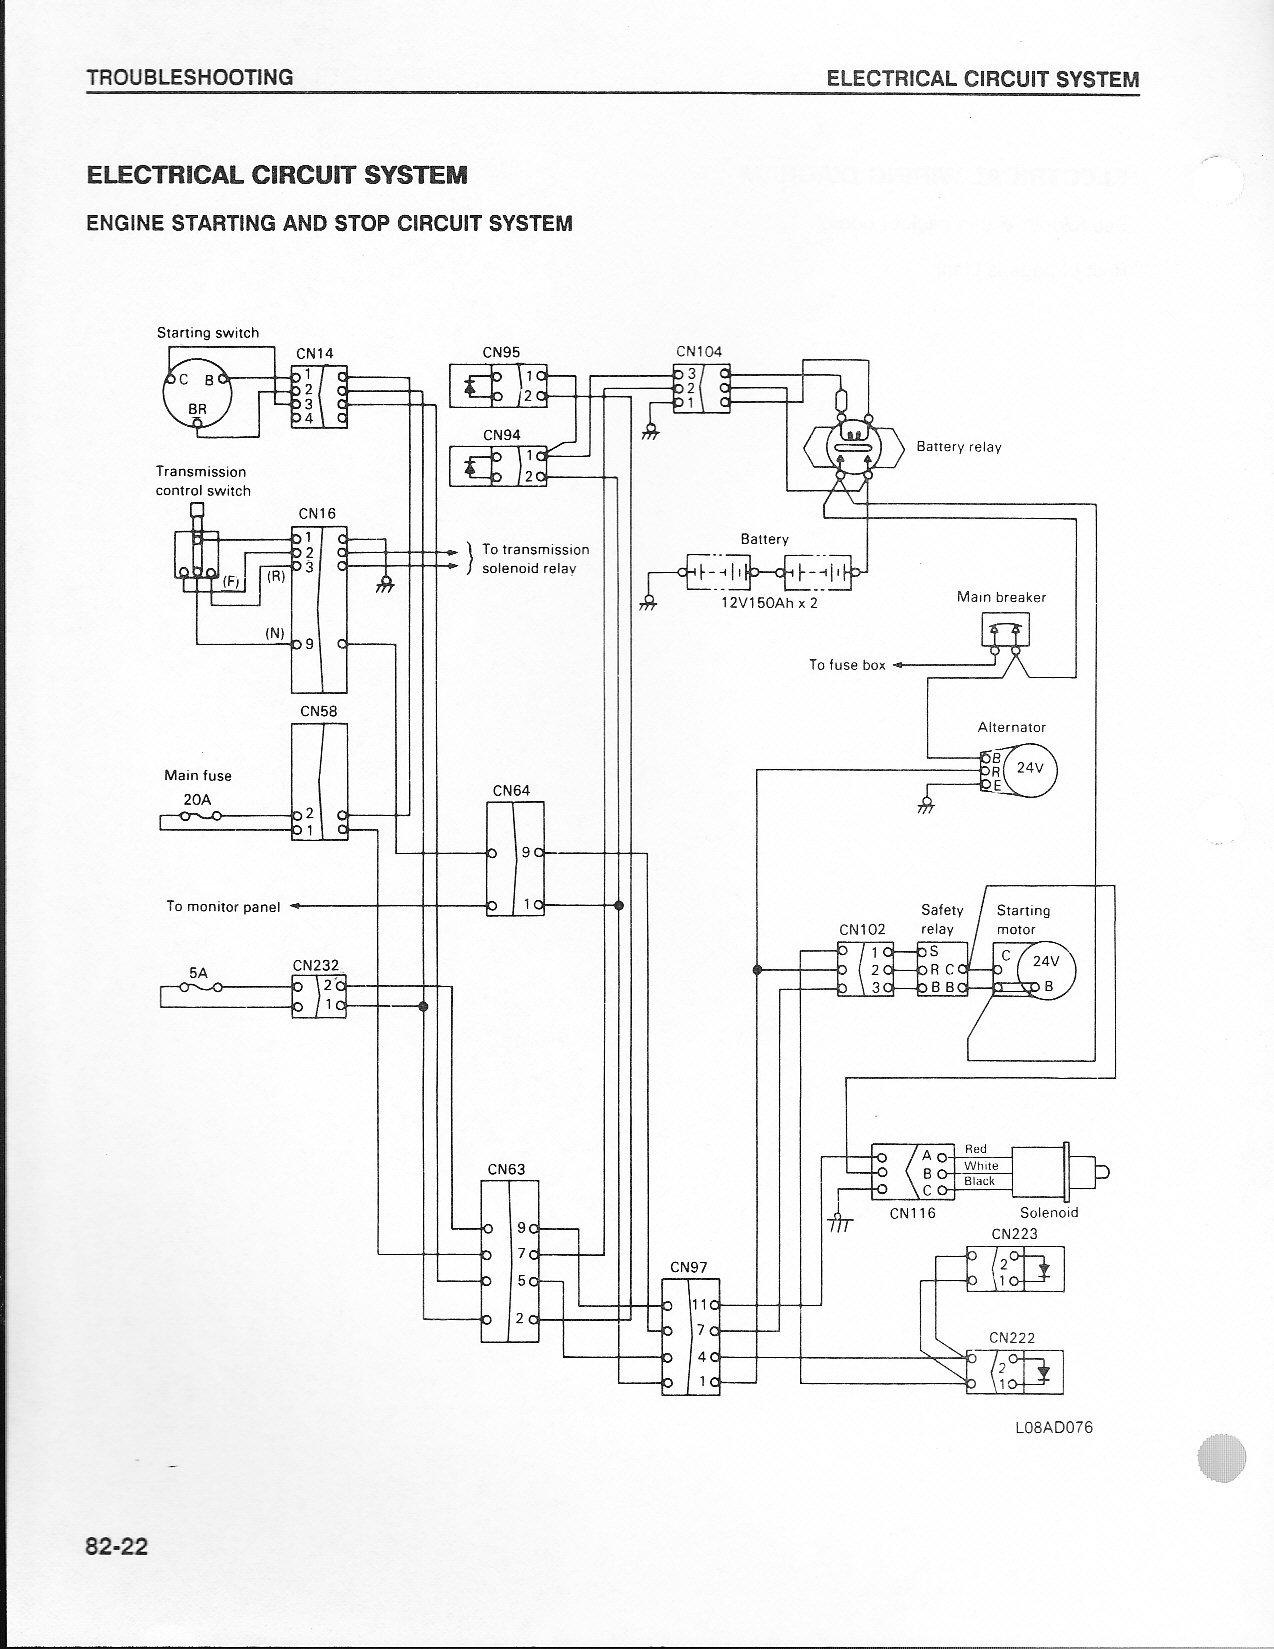 have a wa350 1 1987 wheel loader that won t turn over it was Battery Disconnect Switch Installation hi jim this is from a 380 1 book but similar to yours i believe i hope these will help you